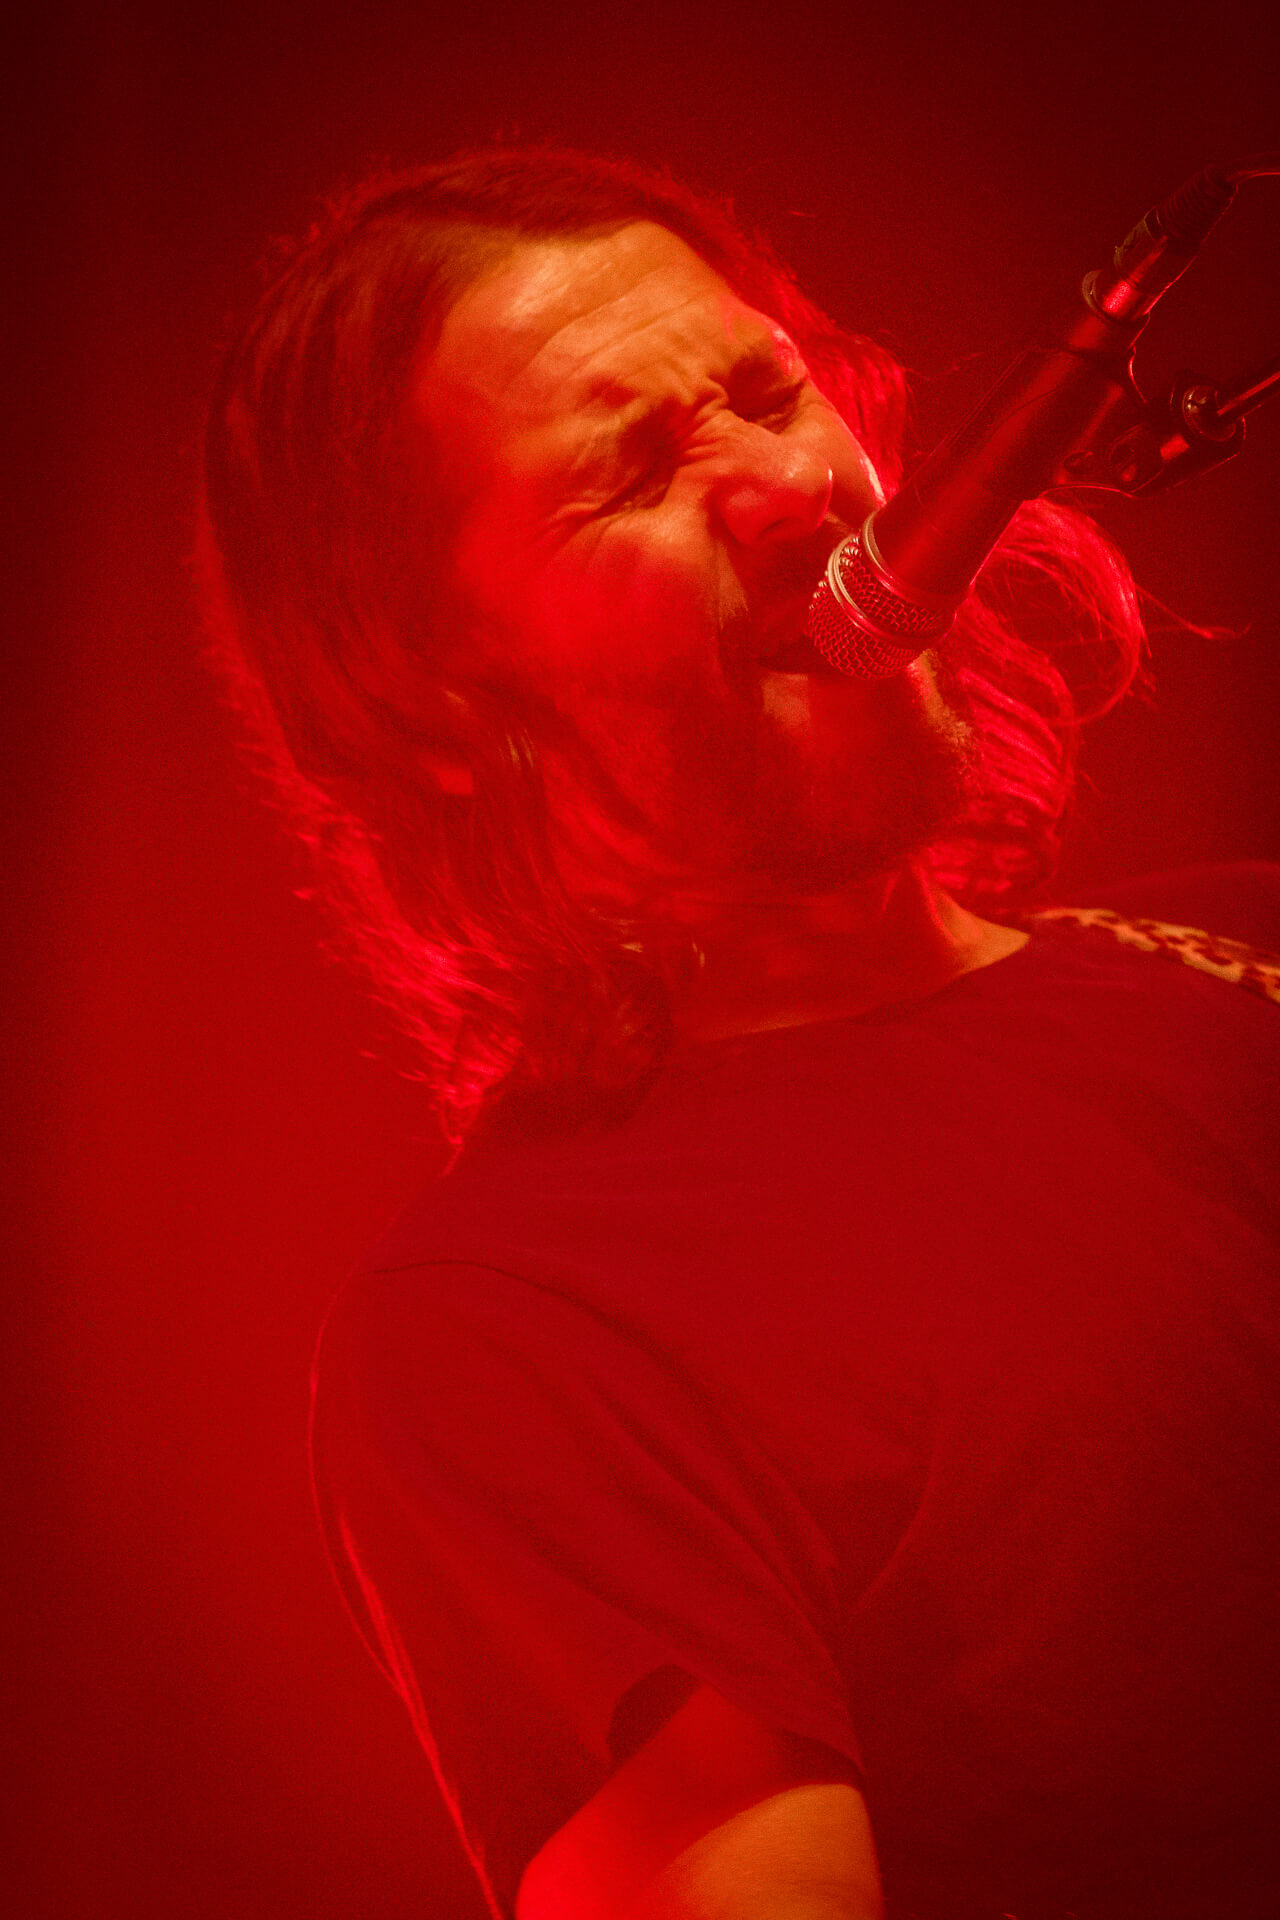 A red tinged close up photograph of Feeder lead singer Grant Nicholas singing at Lakefest 2017.